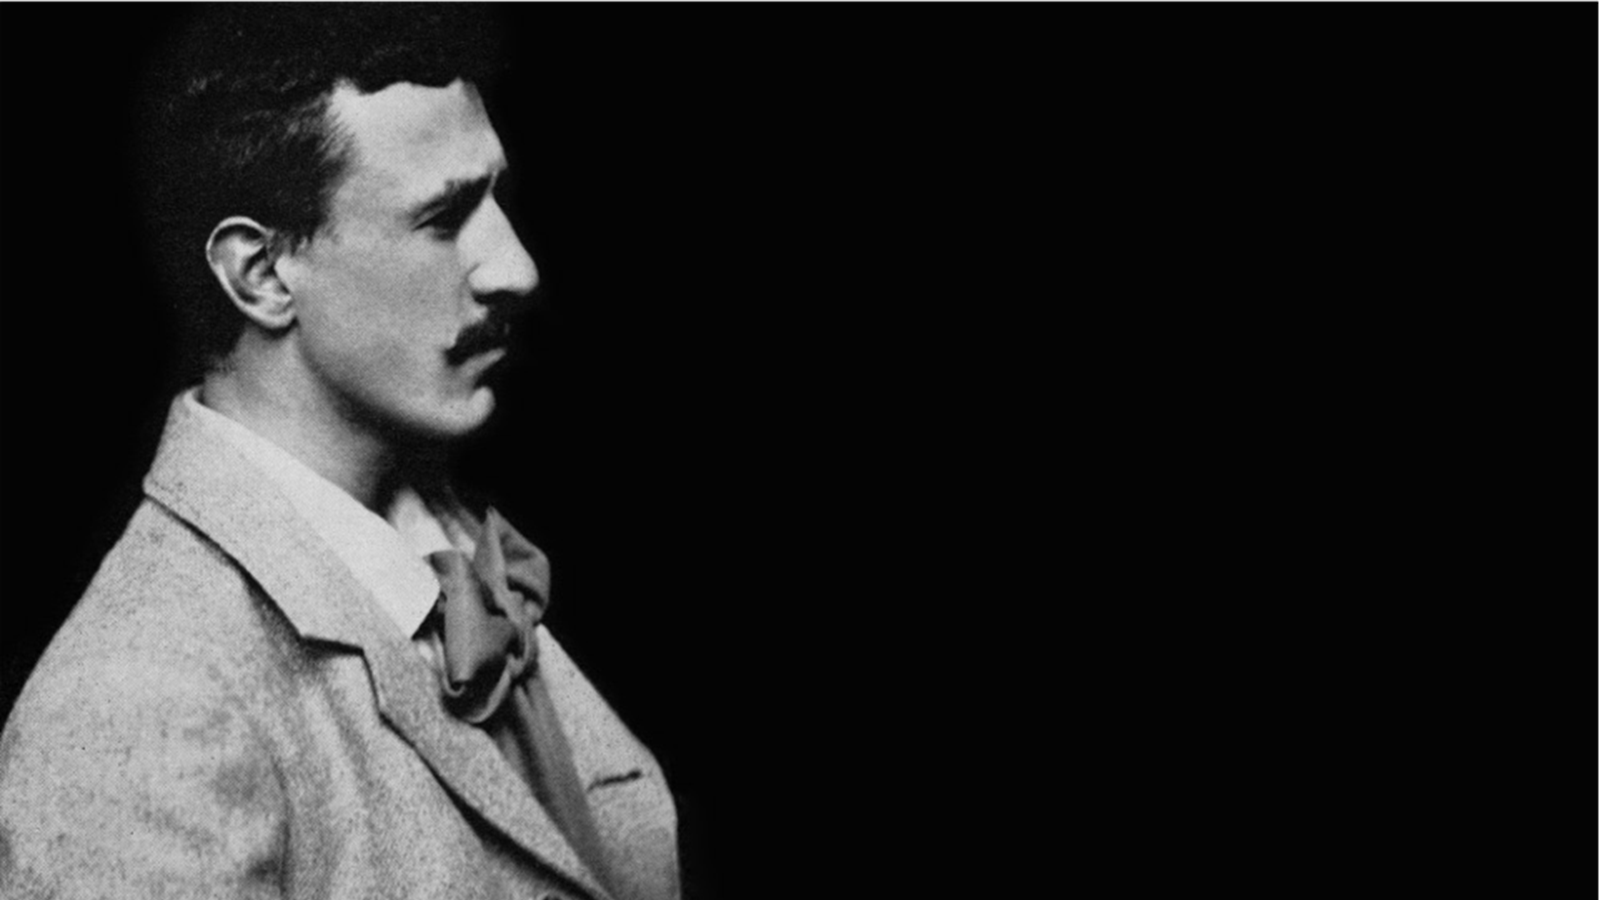 Black and white side profile of Charles Rennie Mackintosh